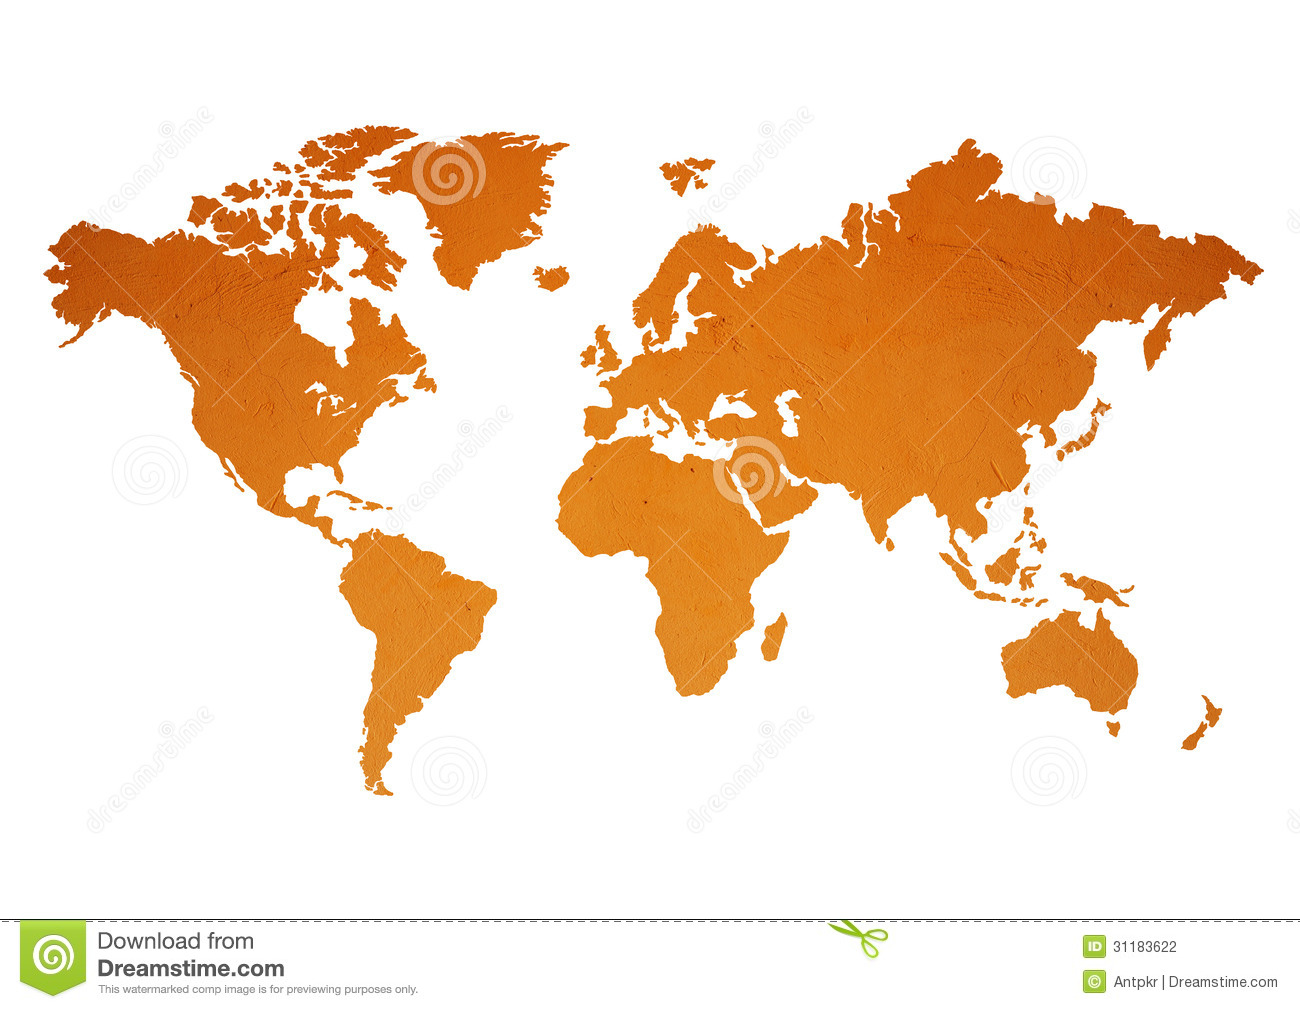 World map stock photo image of planet orange earth 31183622 world map gumiabroncs